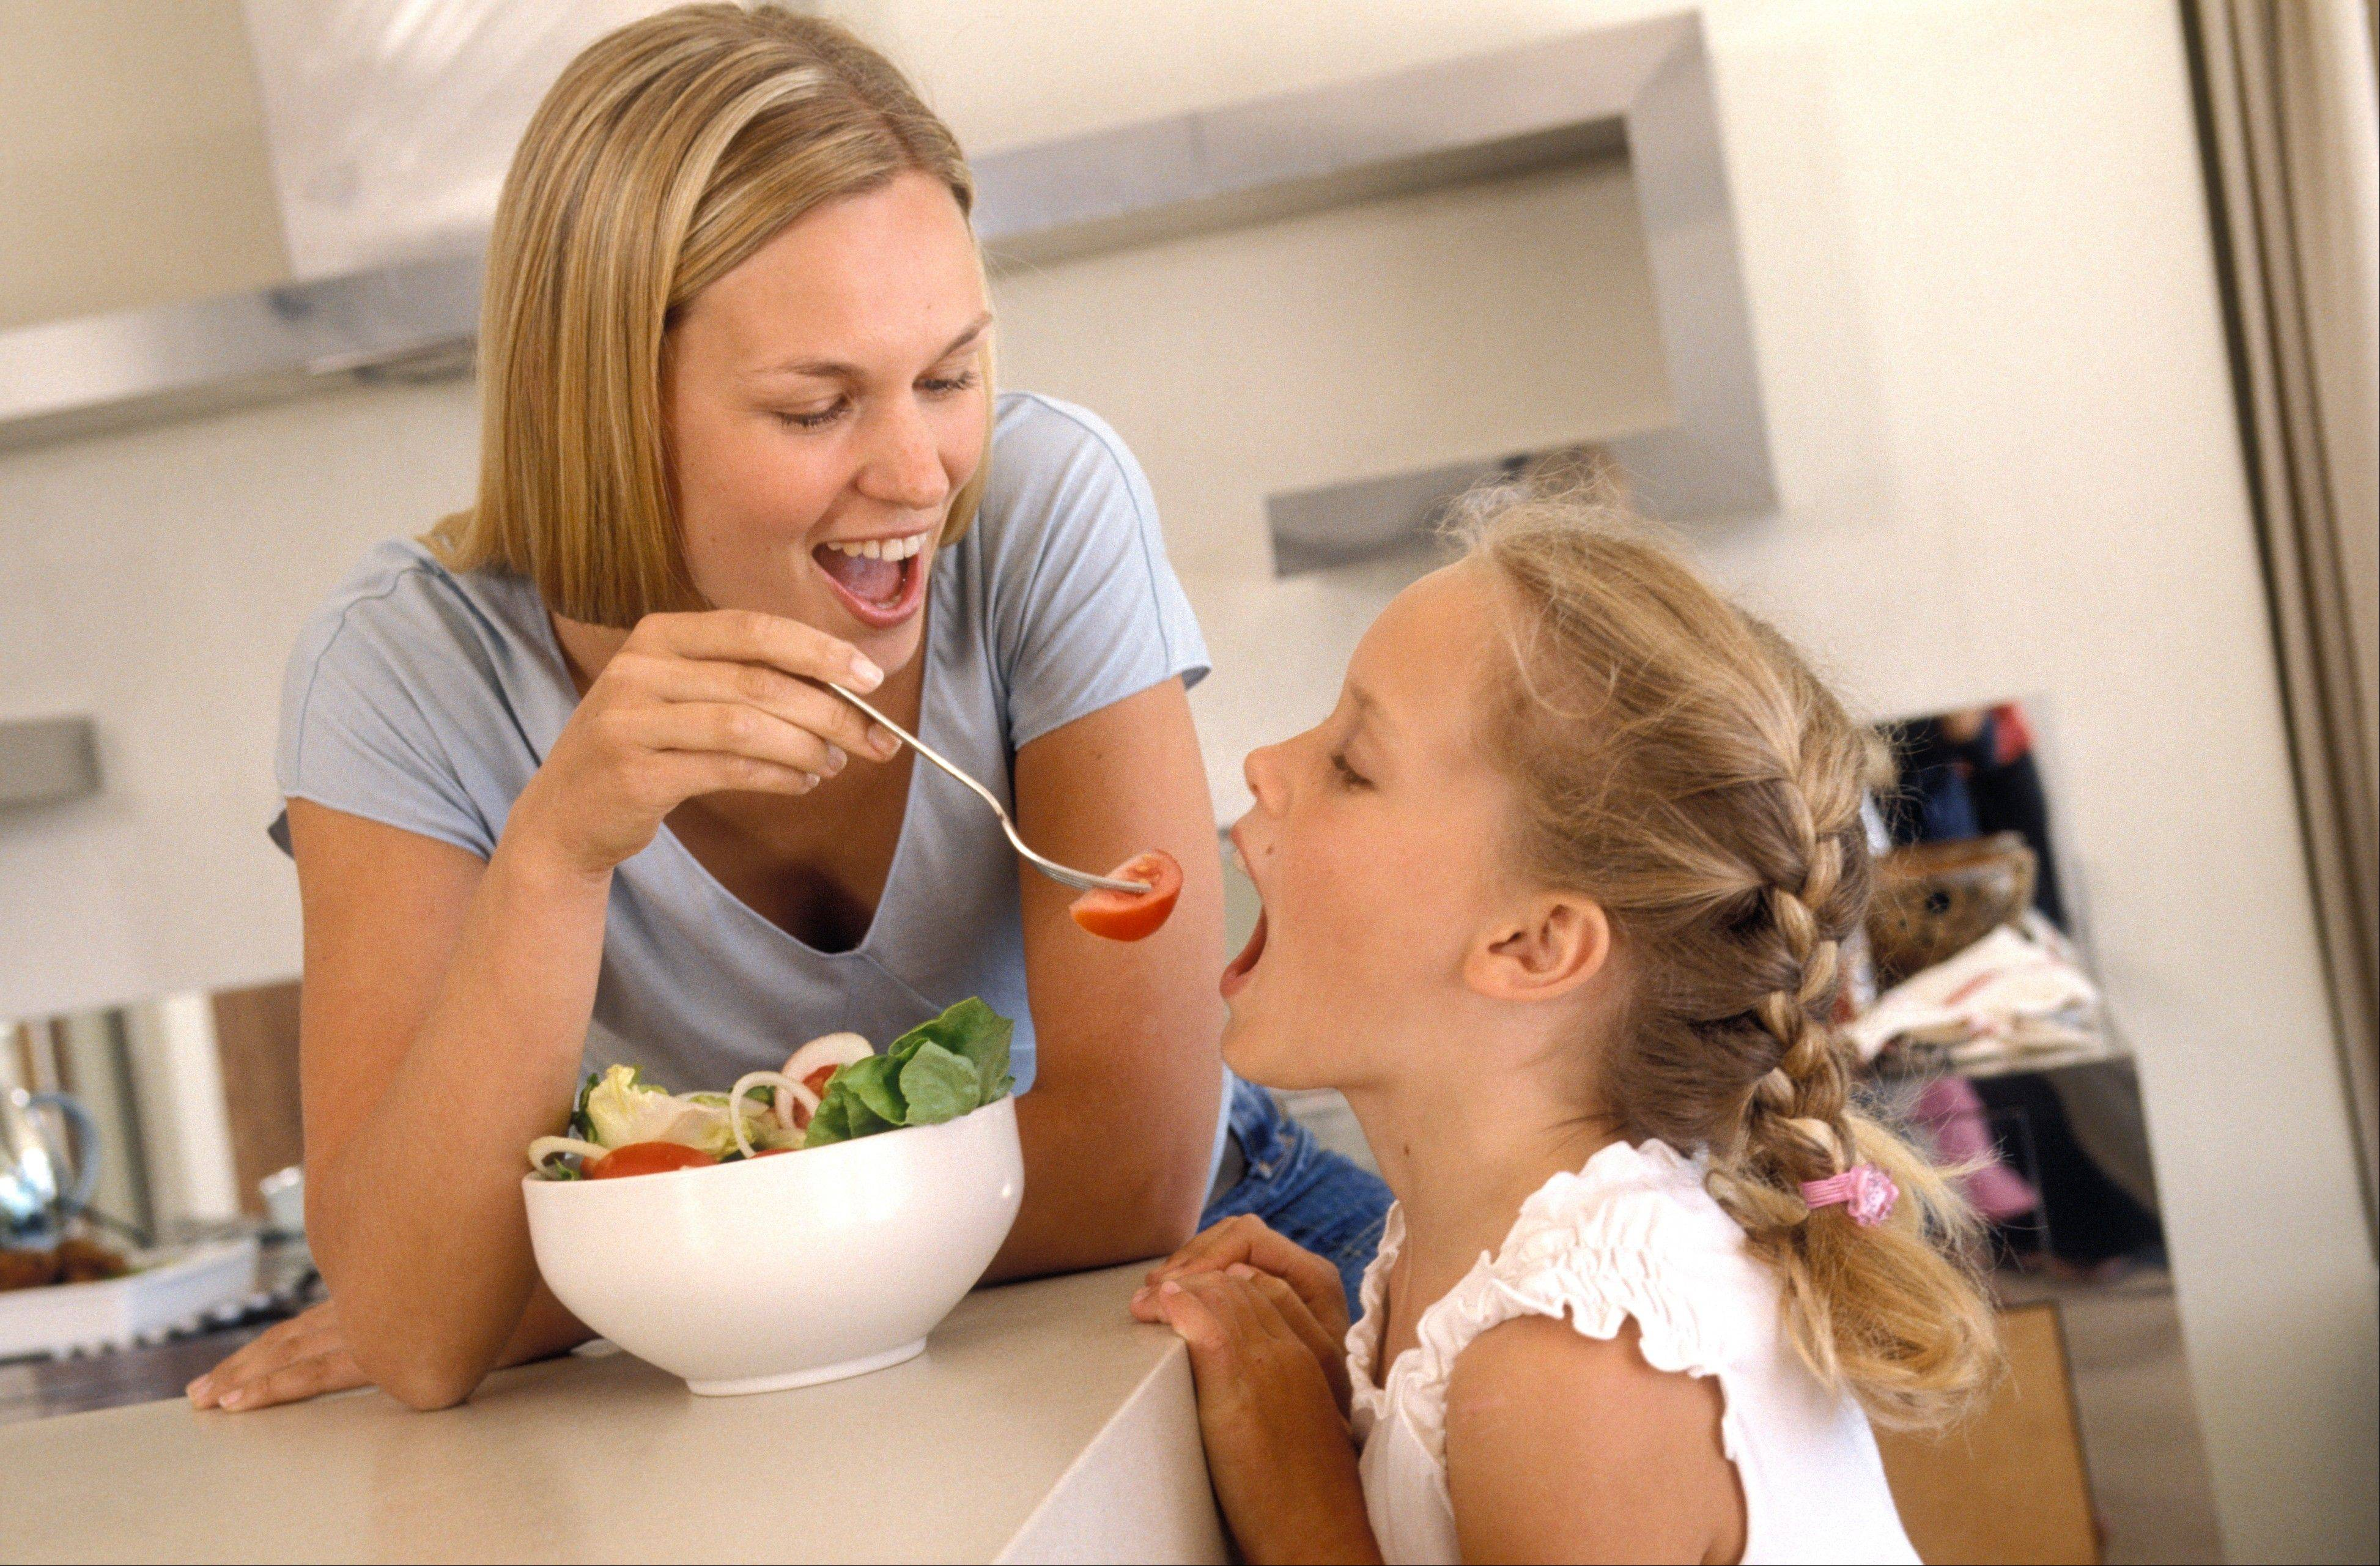 Children are often not too hungry at dinner, but instead want to load up in the afternoon after naps, or school. Take advantage of that hunger and offer vegetable-based snacks, as opposed to those with a lot of carbohydrates.